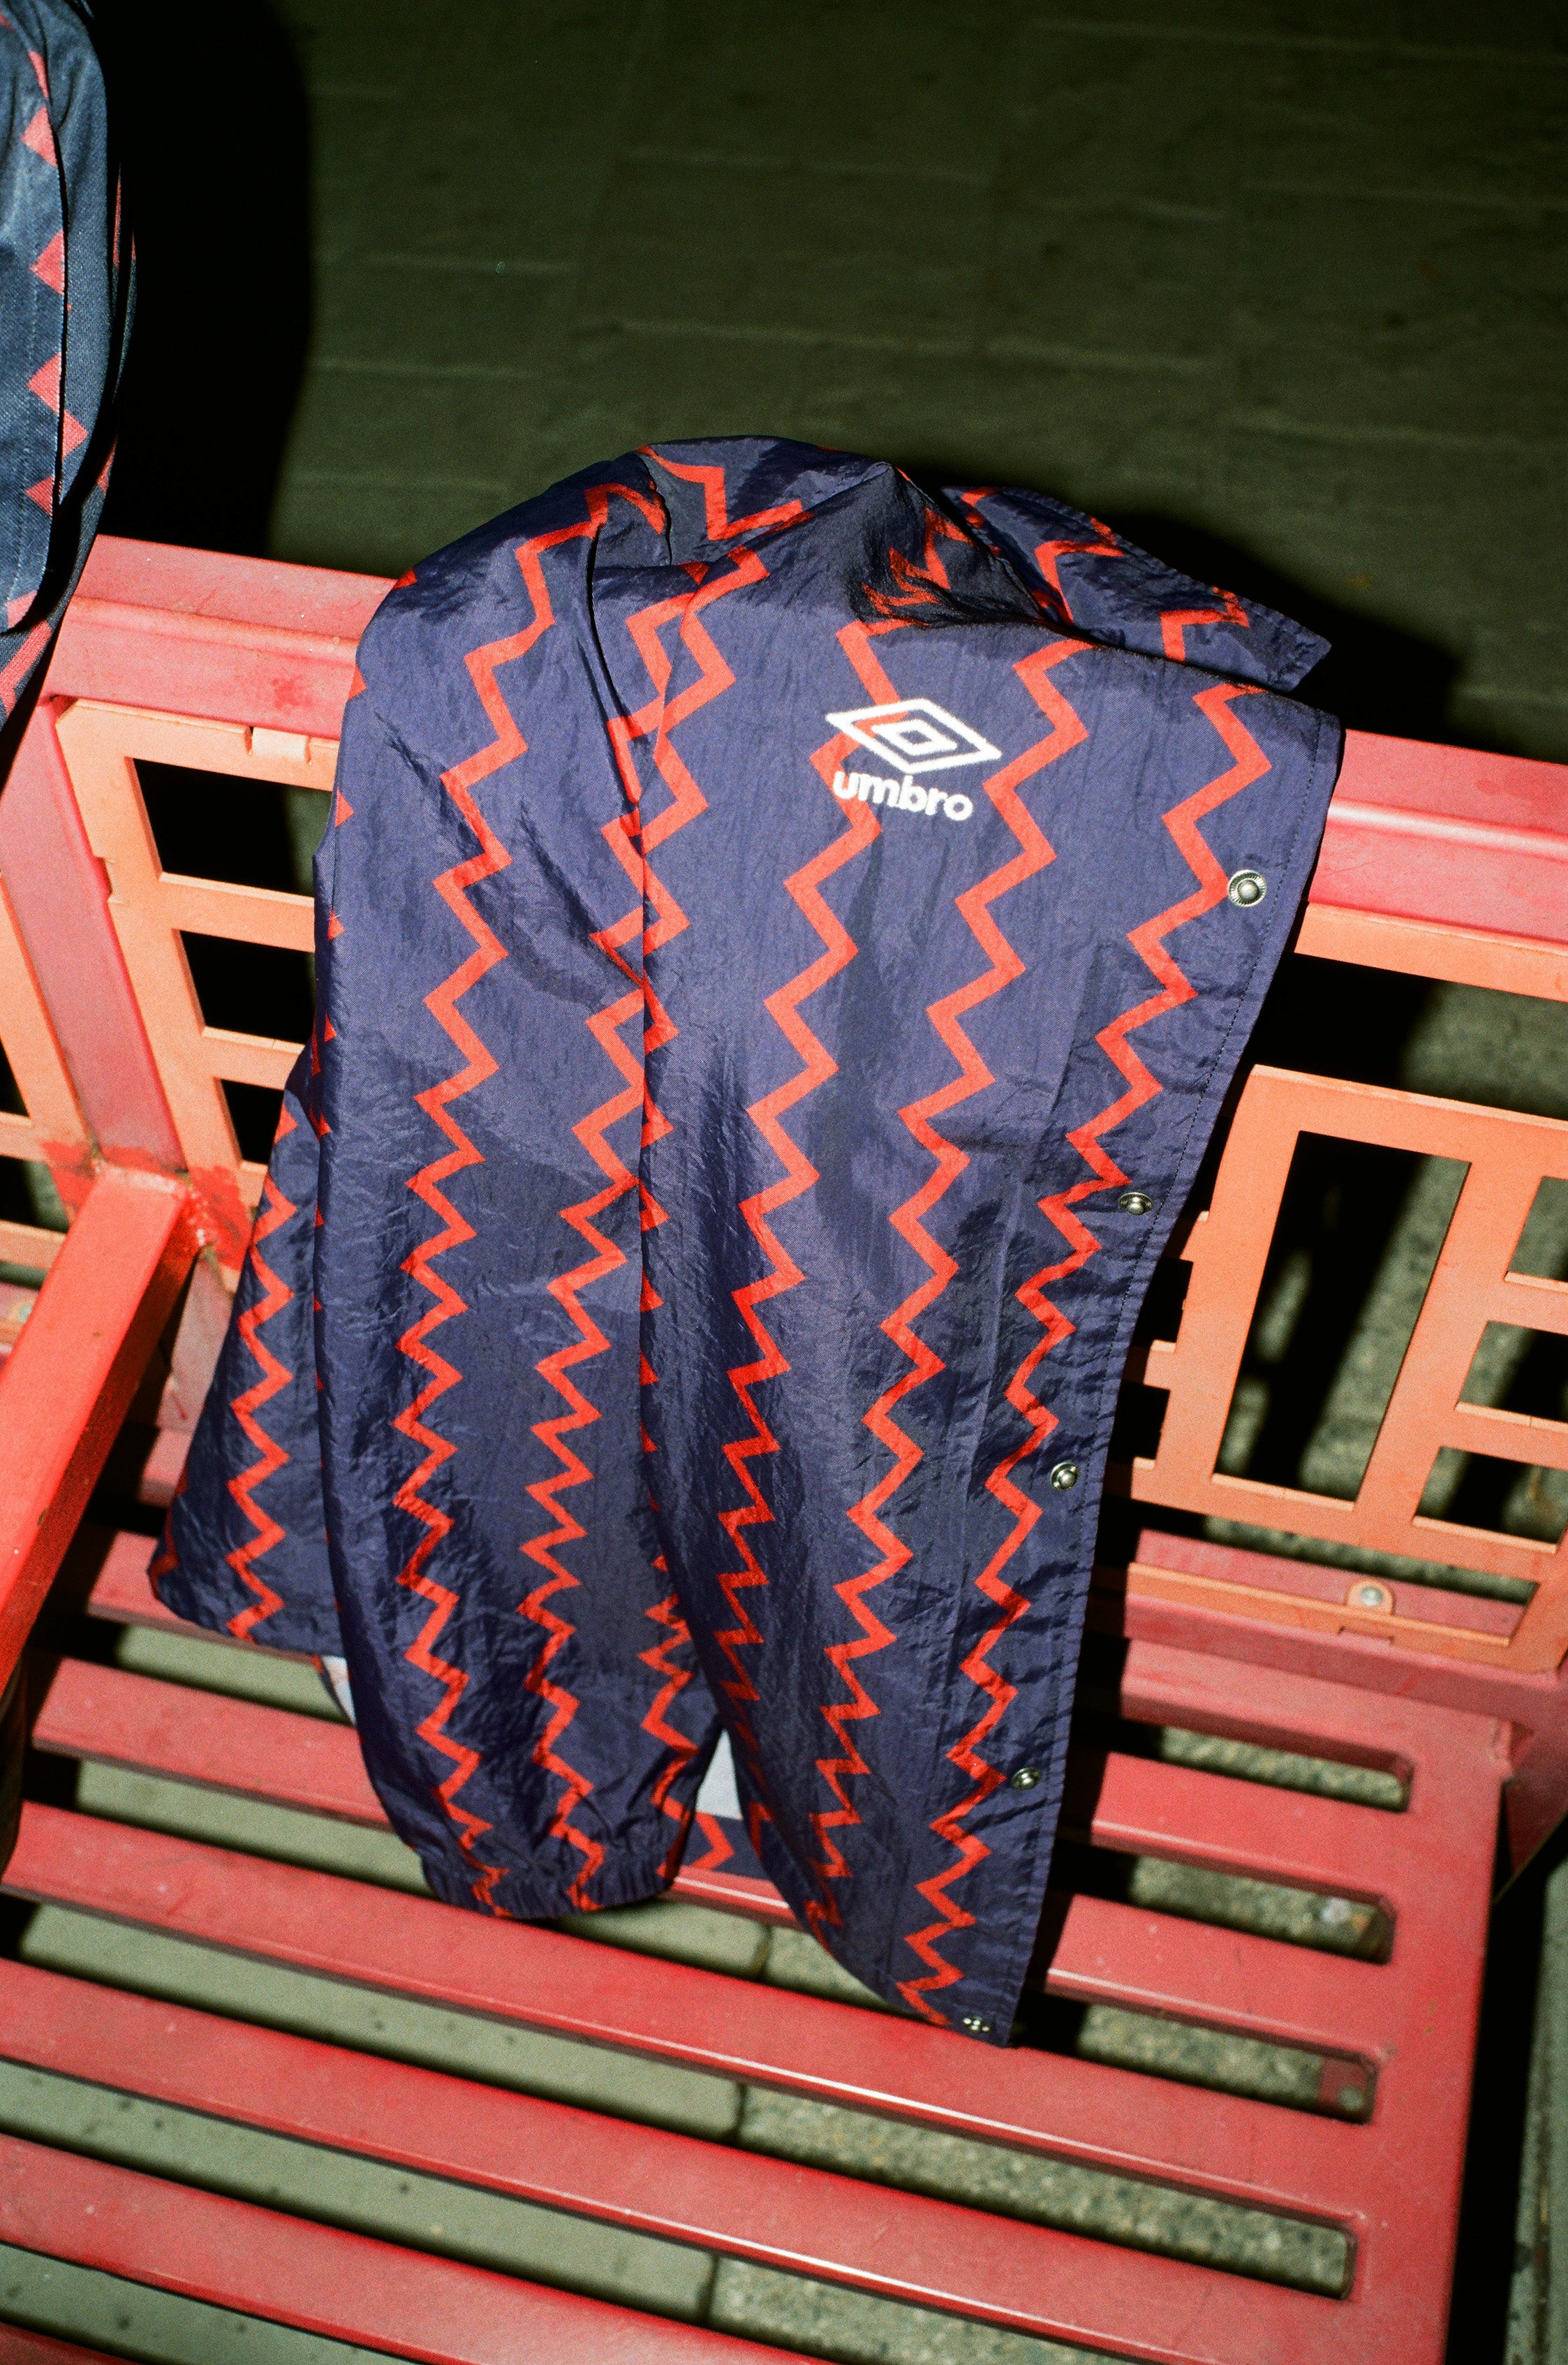 Rowing Blazers X Umbro Red and Navy Zig-Zag Coach's Jacket hanging over a chair